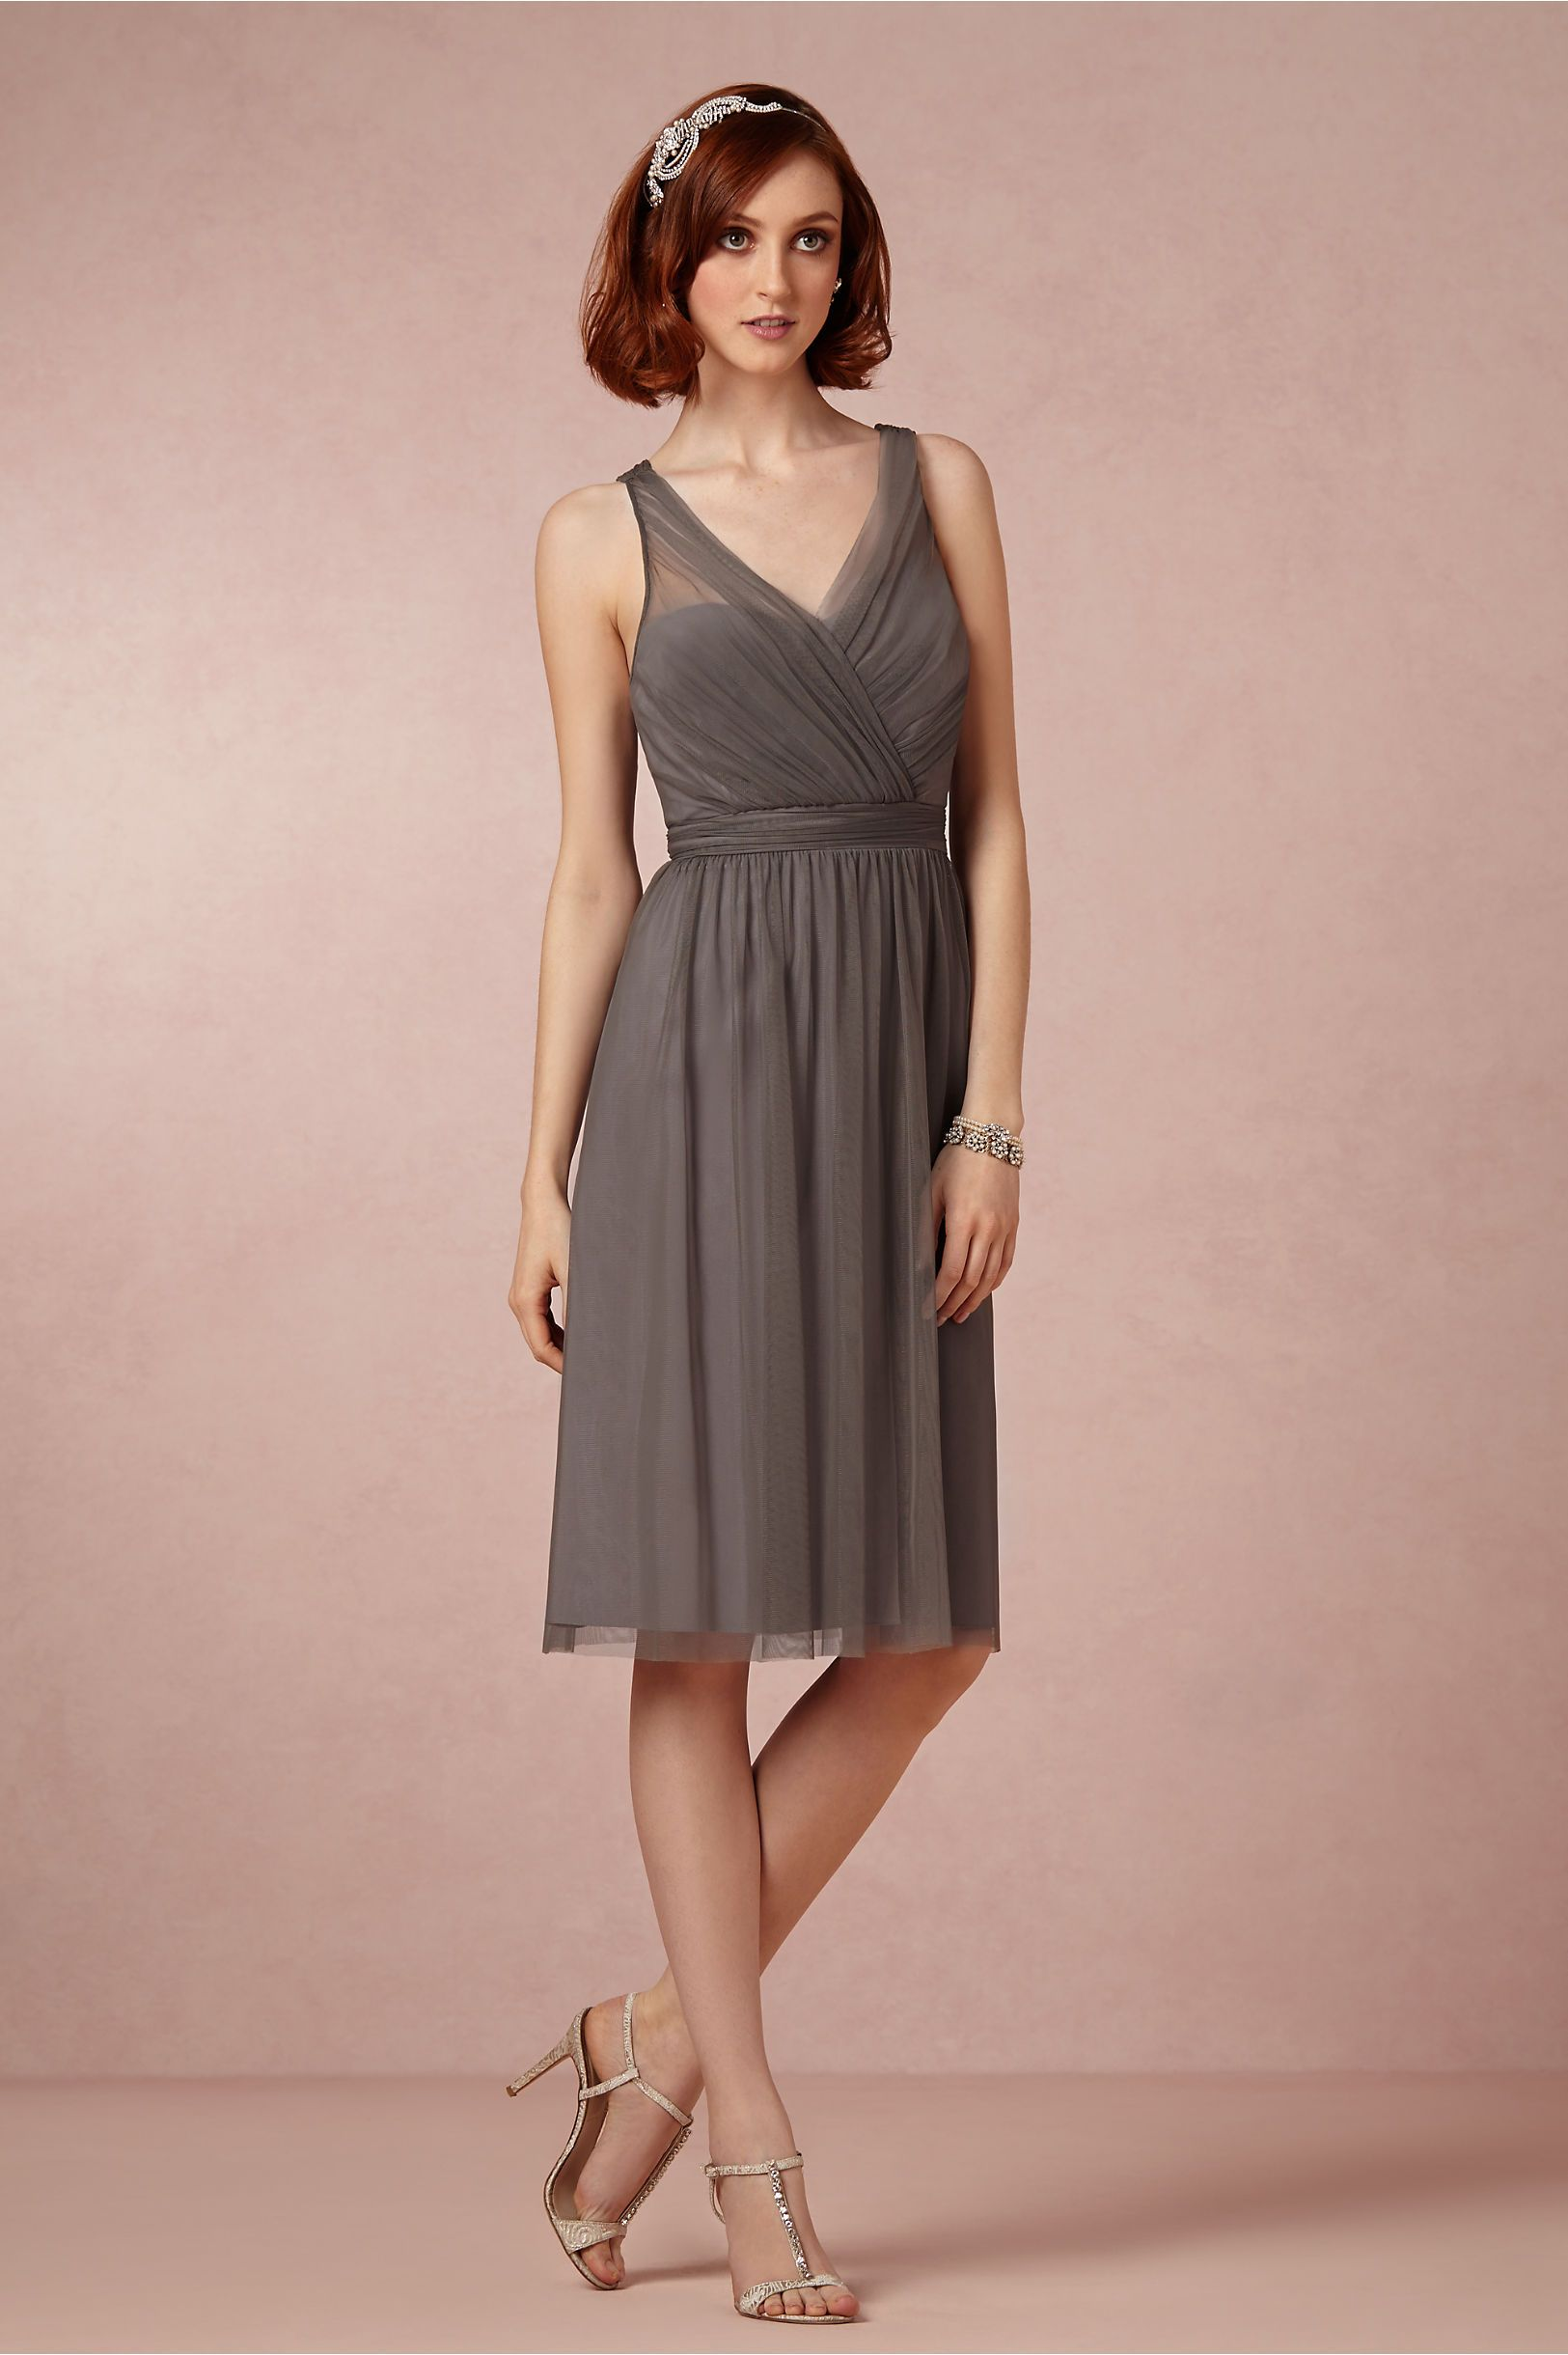 Tansy Dress in Sale Dresses at BHLDN | I do | Pinterest